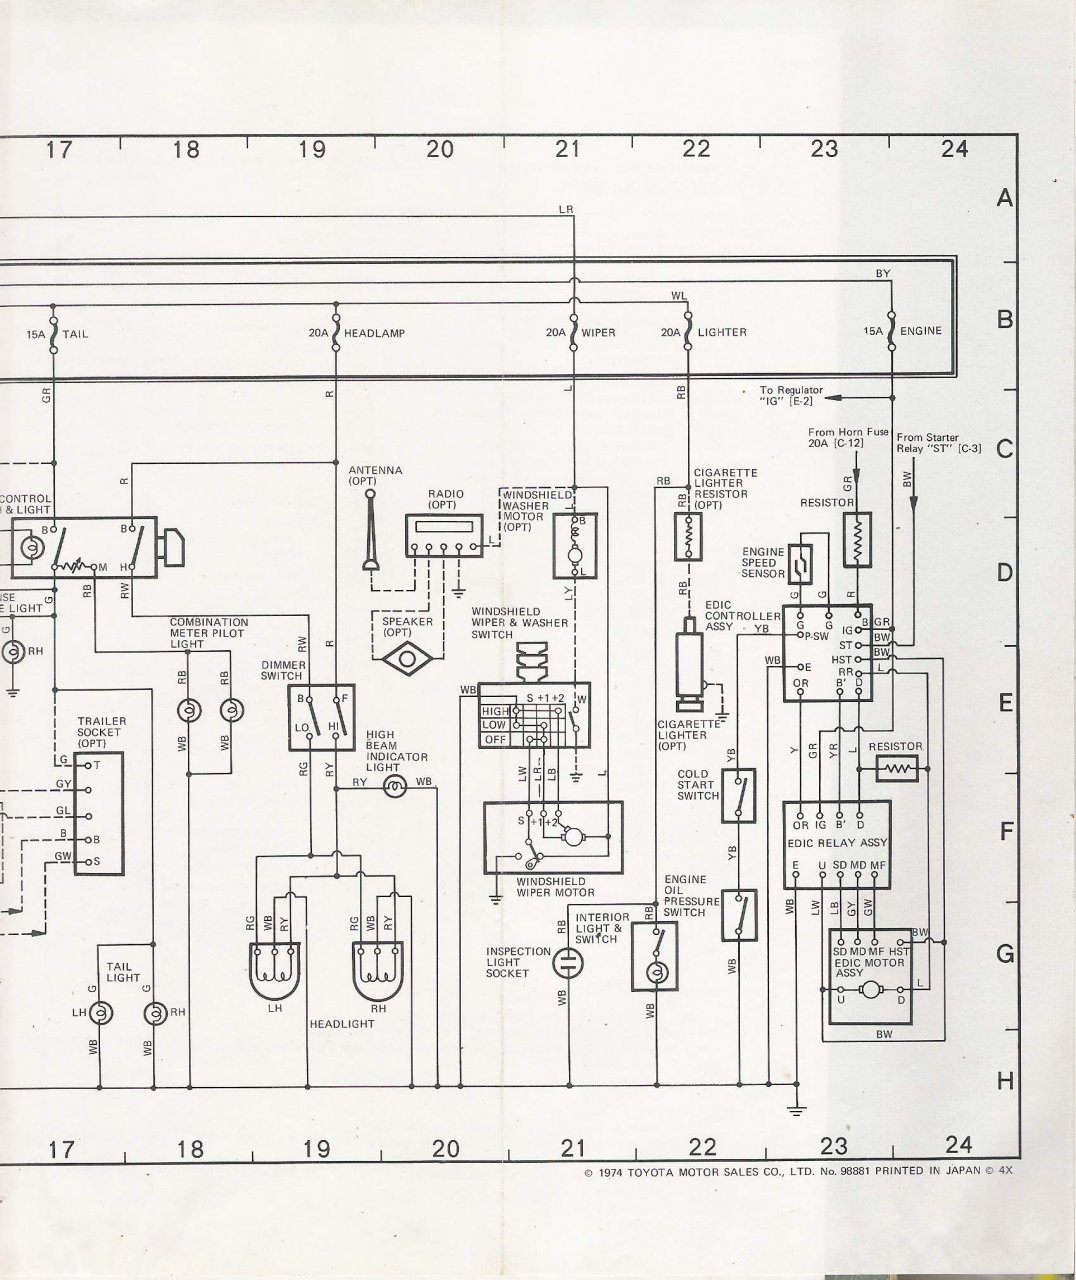 [FPWZ_2684]  Where can I find a Wiring Schematic for a BJ40 Diesel? | IH8MUD Forum | Bj40 Wiring Diagram |  | IH8MUD Forum